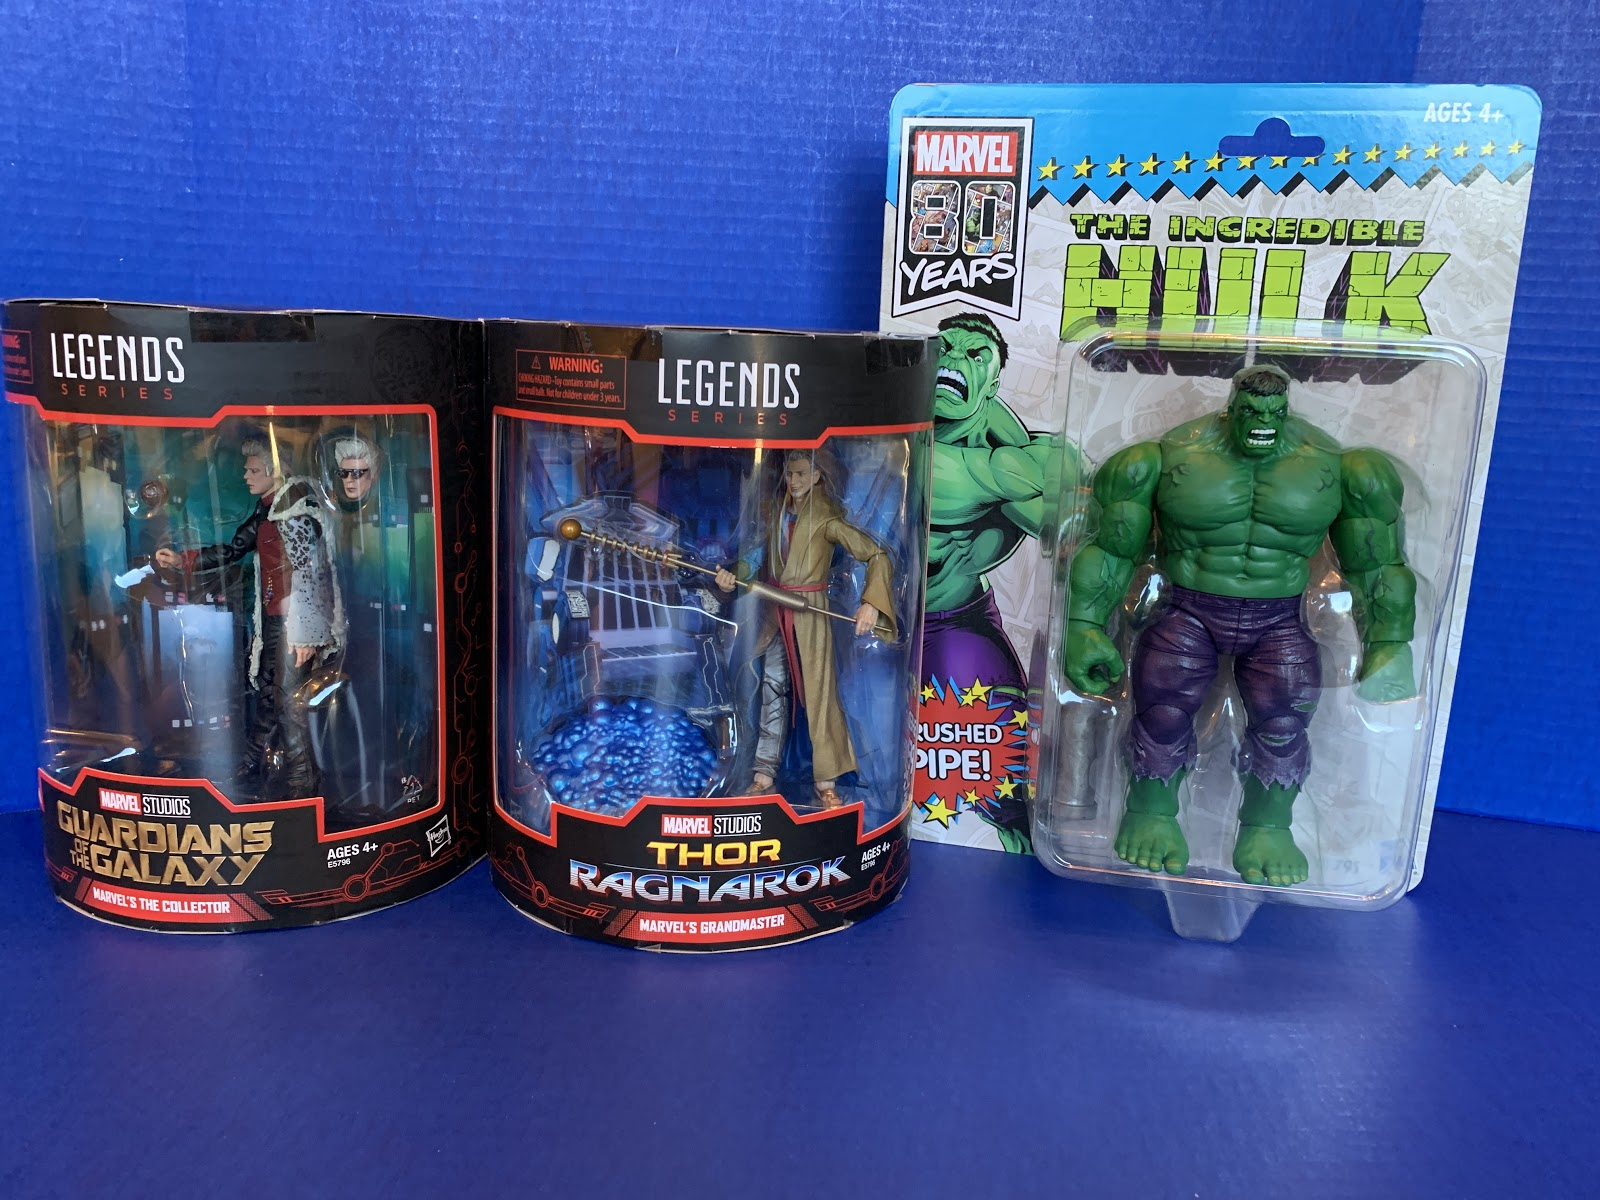 Toy Review: Marvel Legends Collector, Grandmaster, and 80th